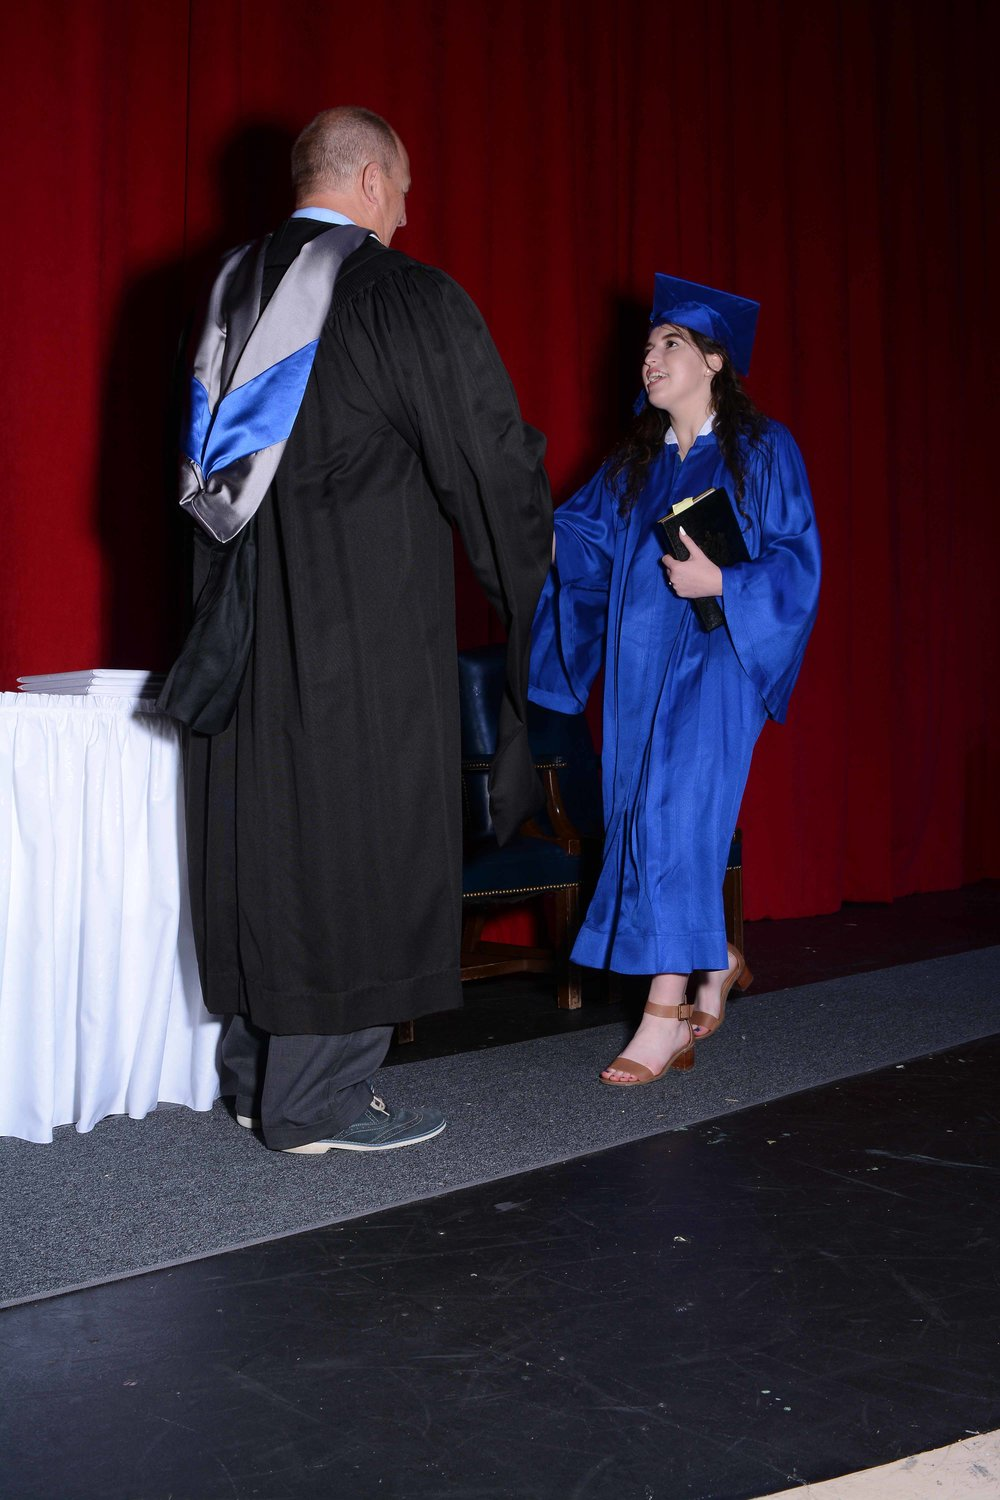 May14 Commencement174.jpg